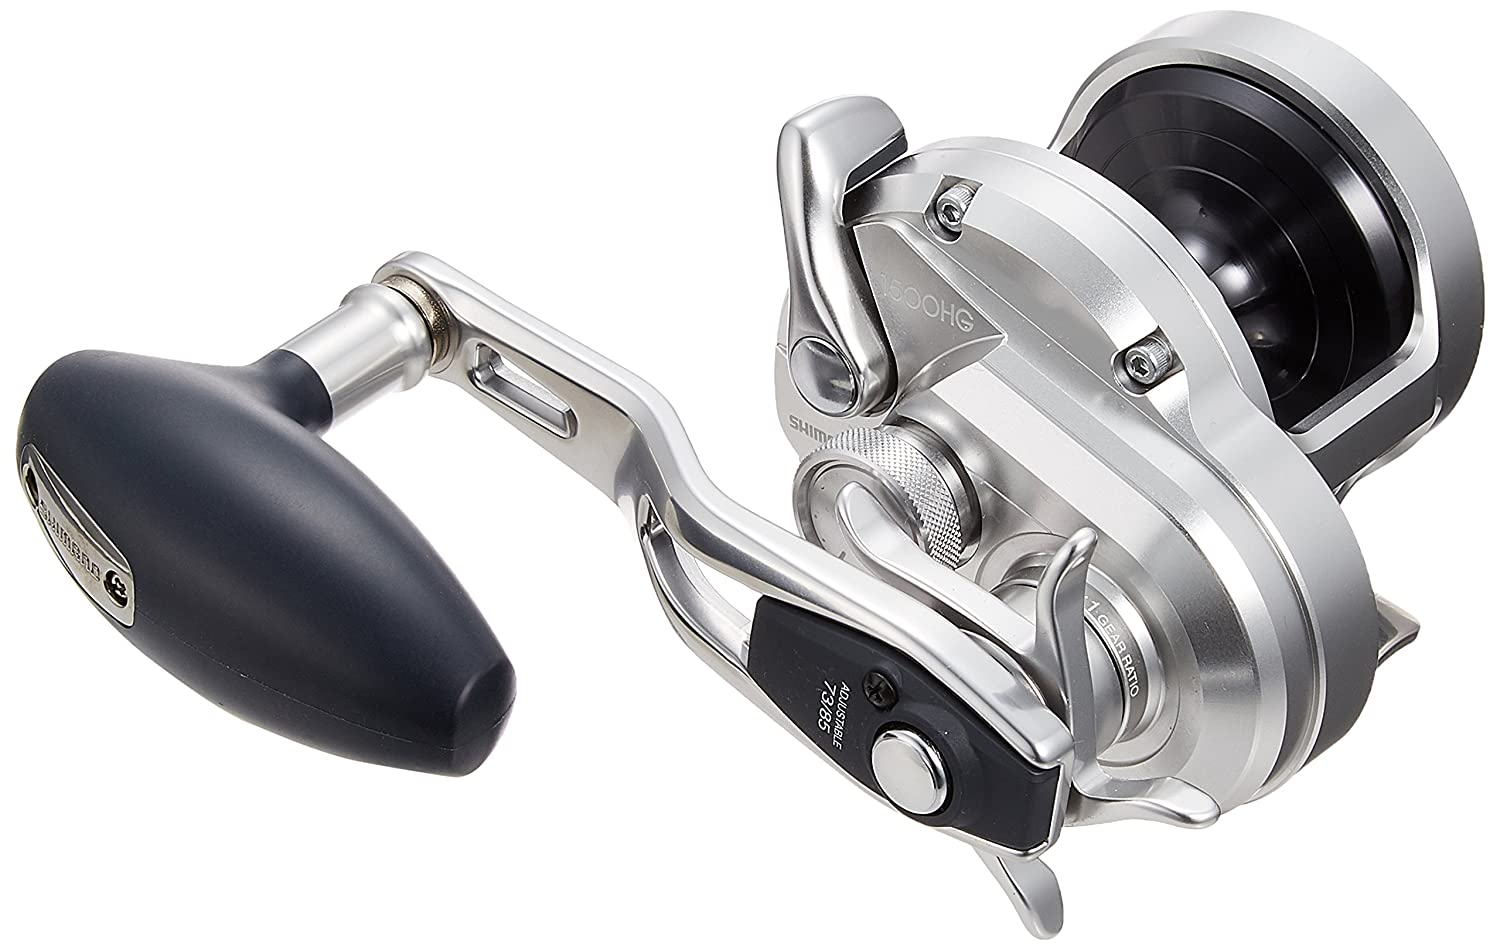 Shimano (SHIMANO) bait reel jigging 17 Oshiajiga 1500HG right hanJapan import